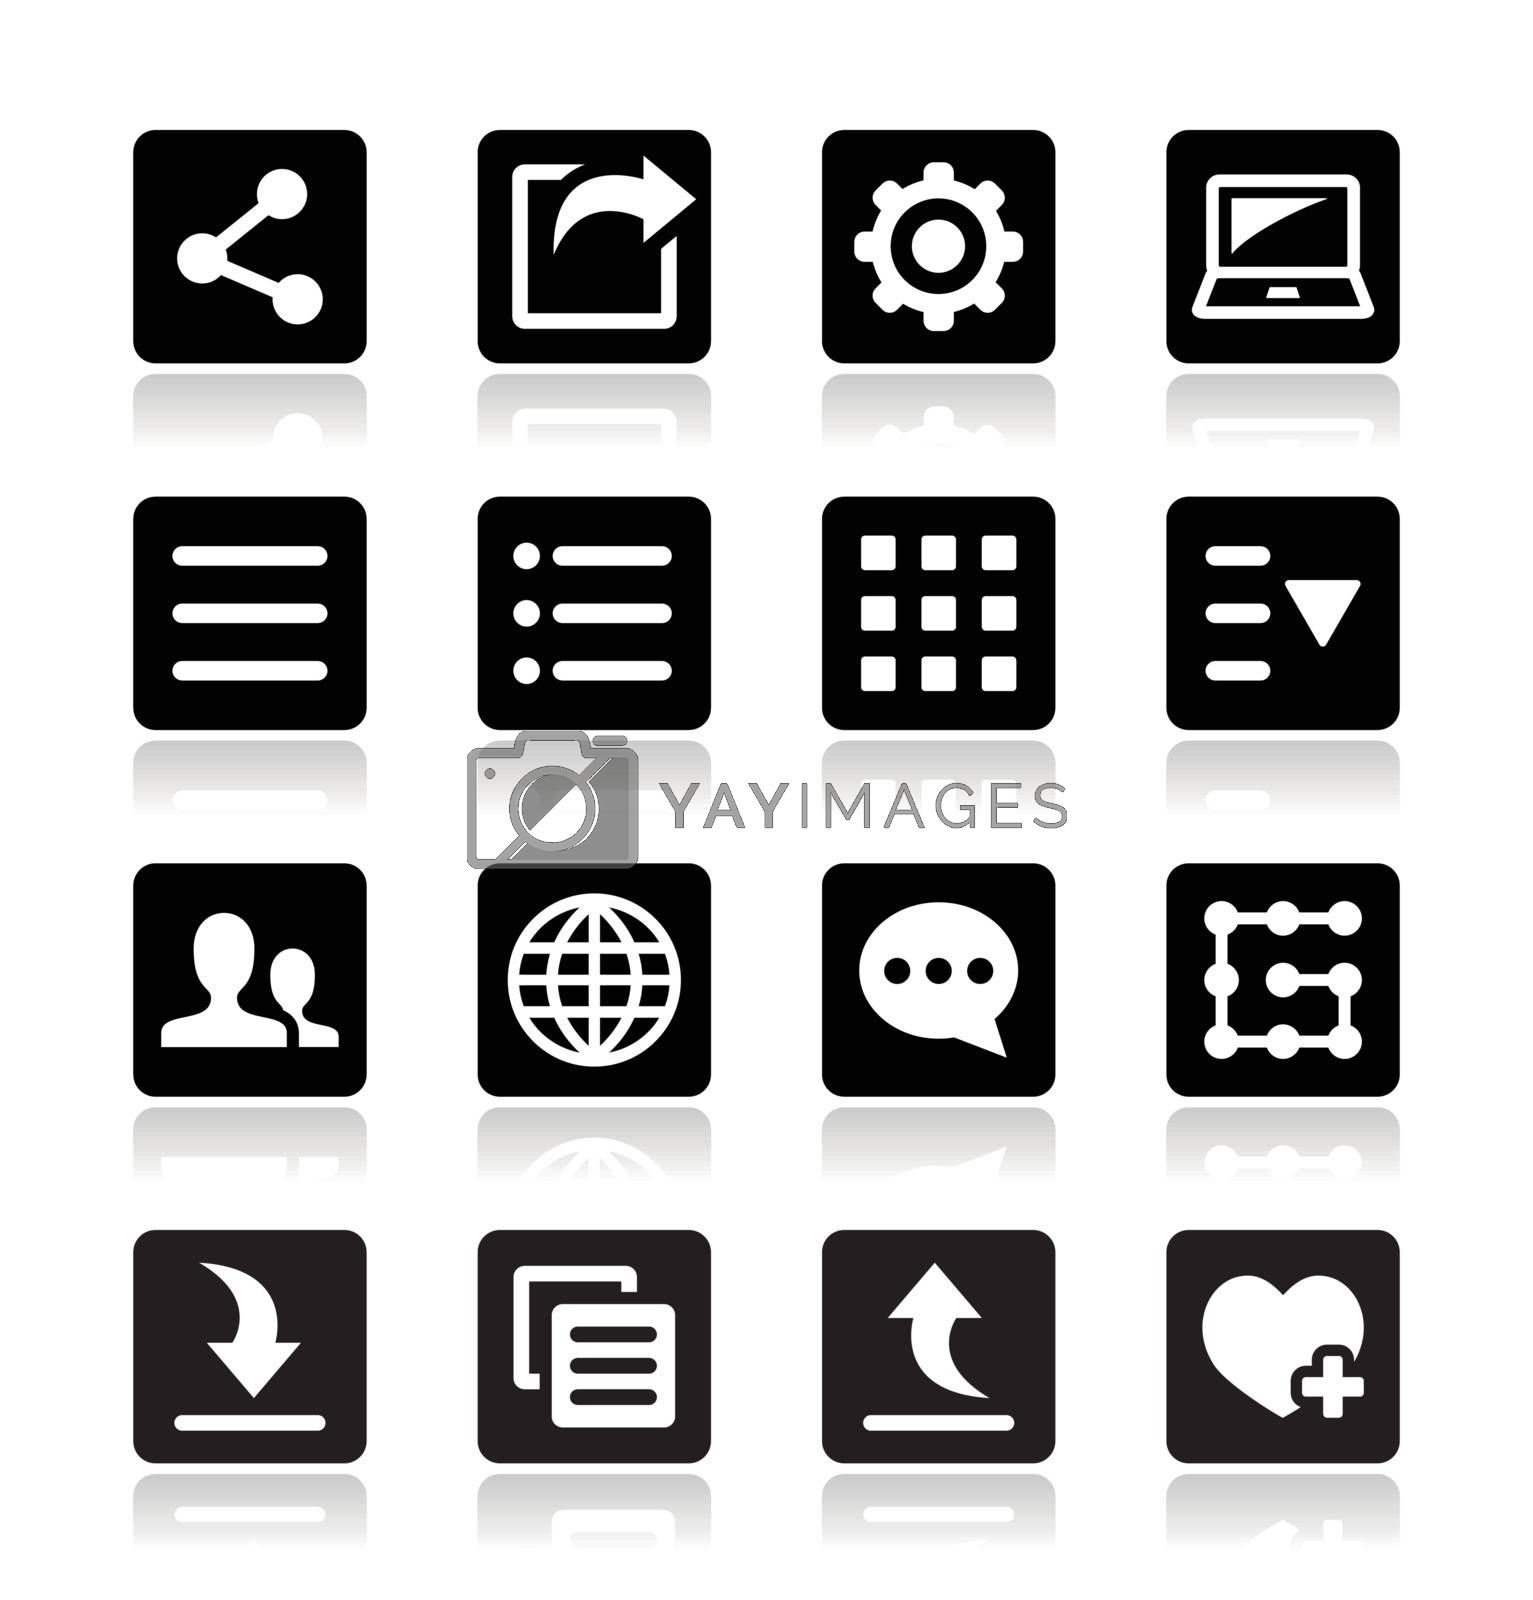 Vector icons set for web, computer, mobile device settings